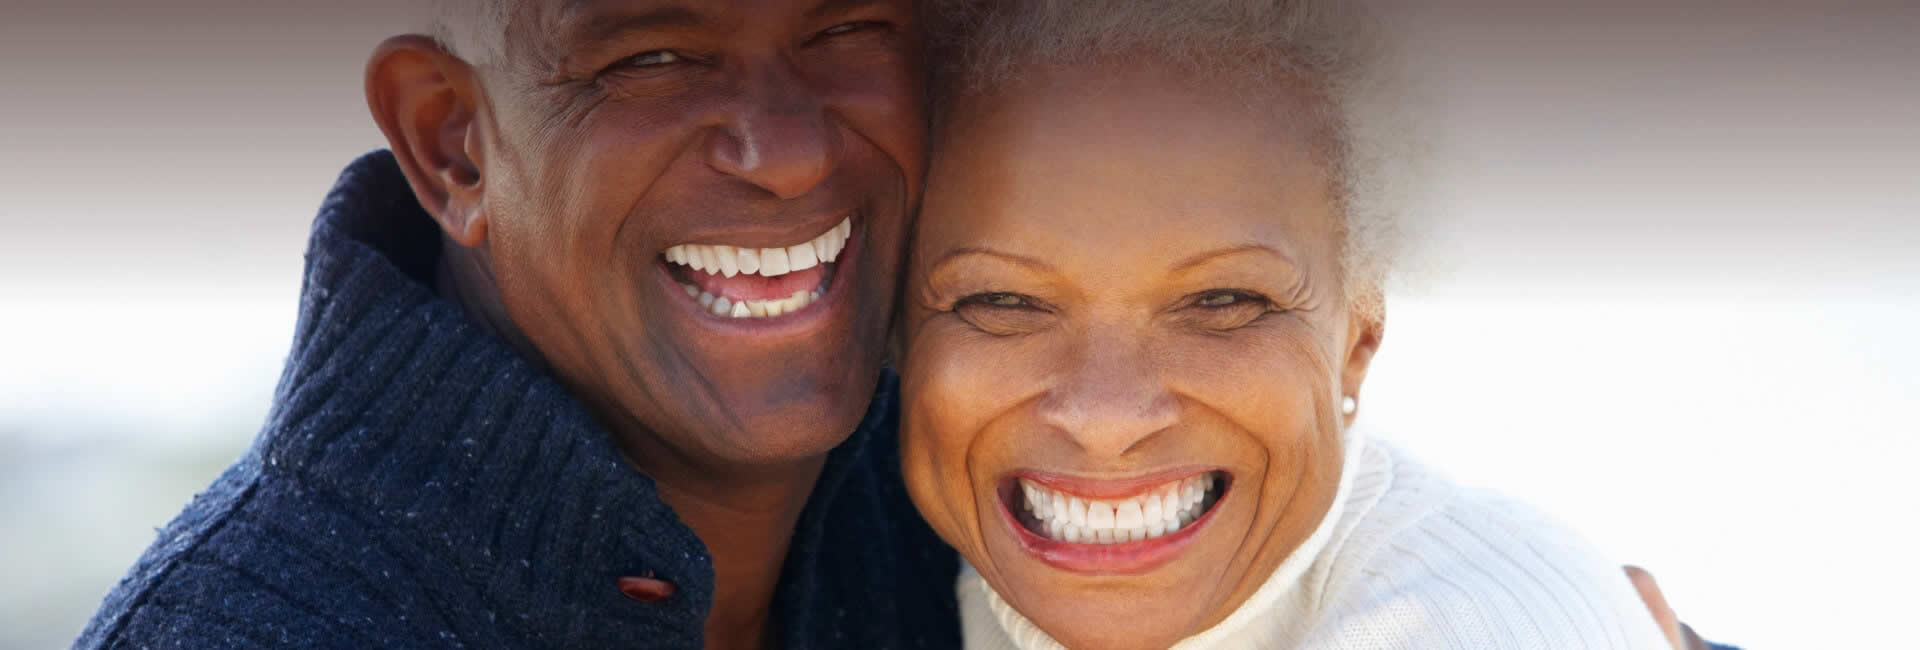 A happy aged couple of African descent